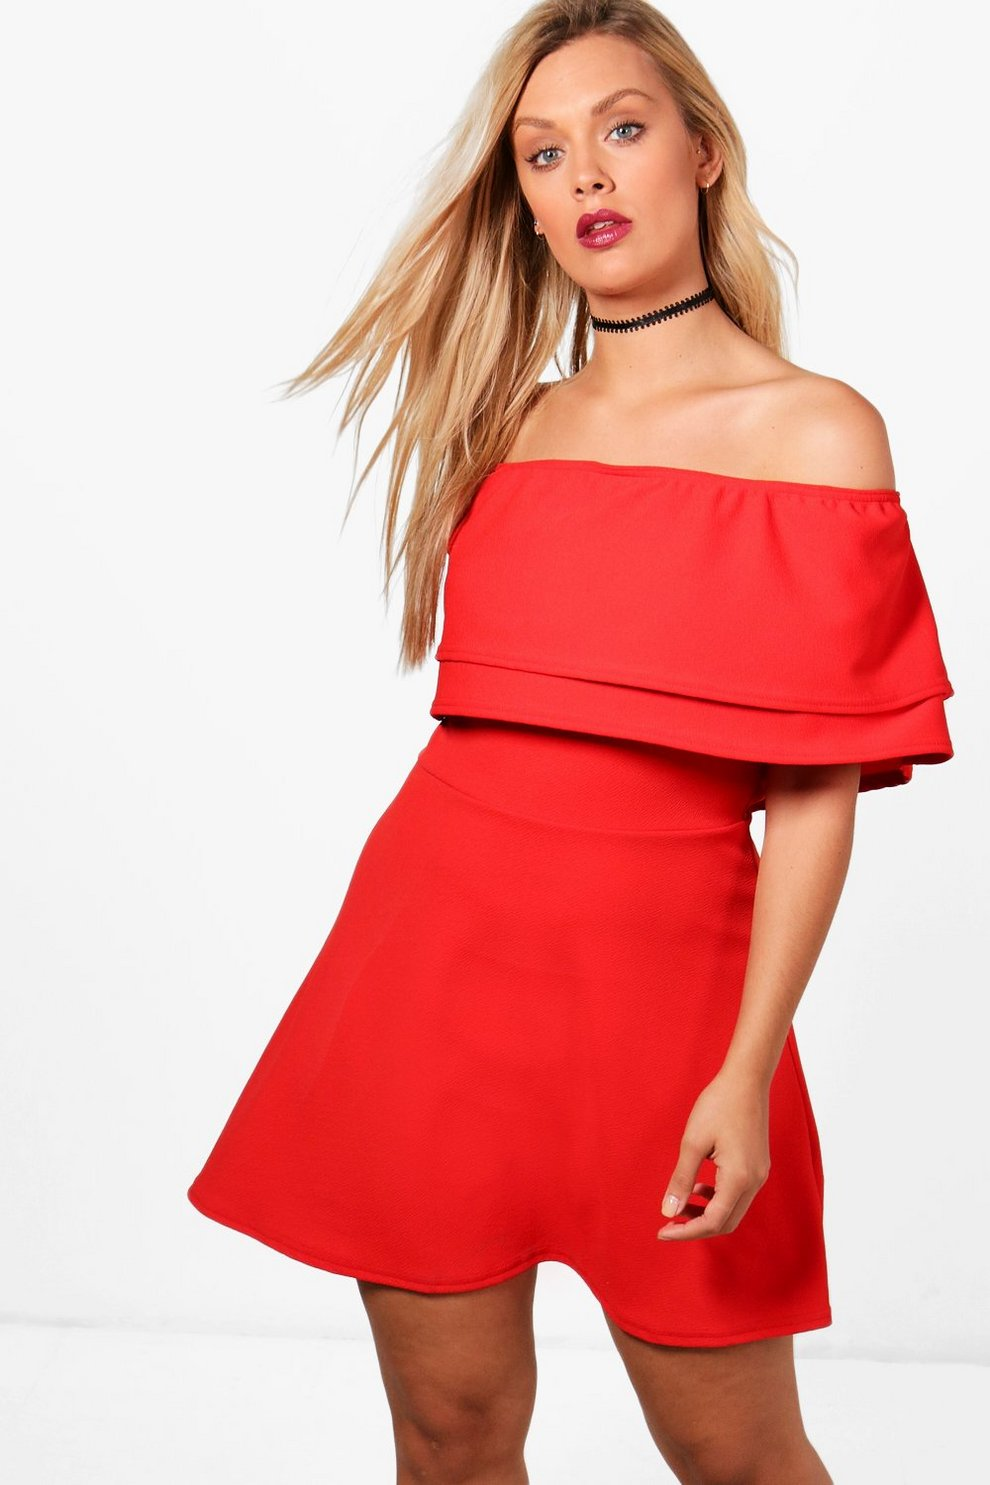 Boohoo Plus Off The Shoulder Ruffle Dress Wholesale Price For Sale bL8uX